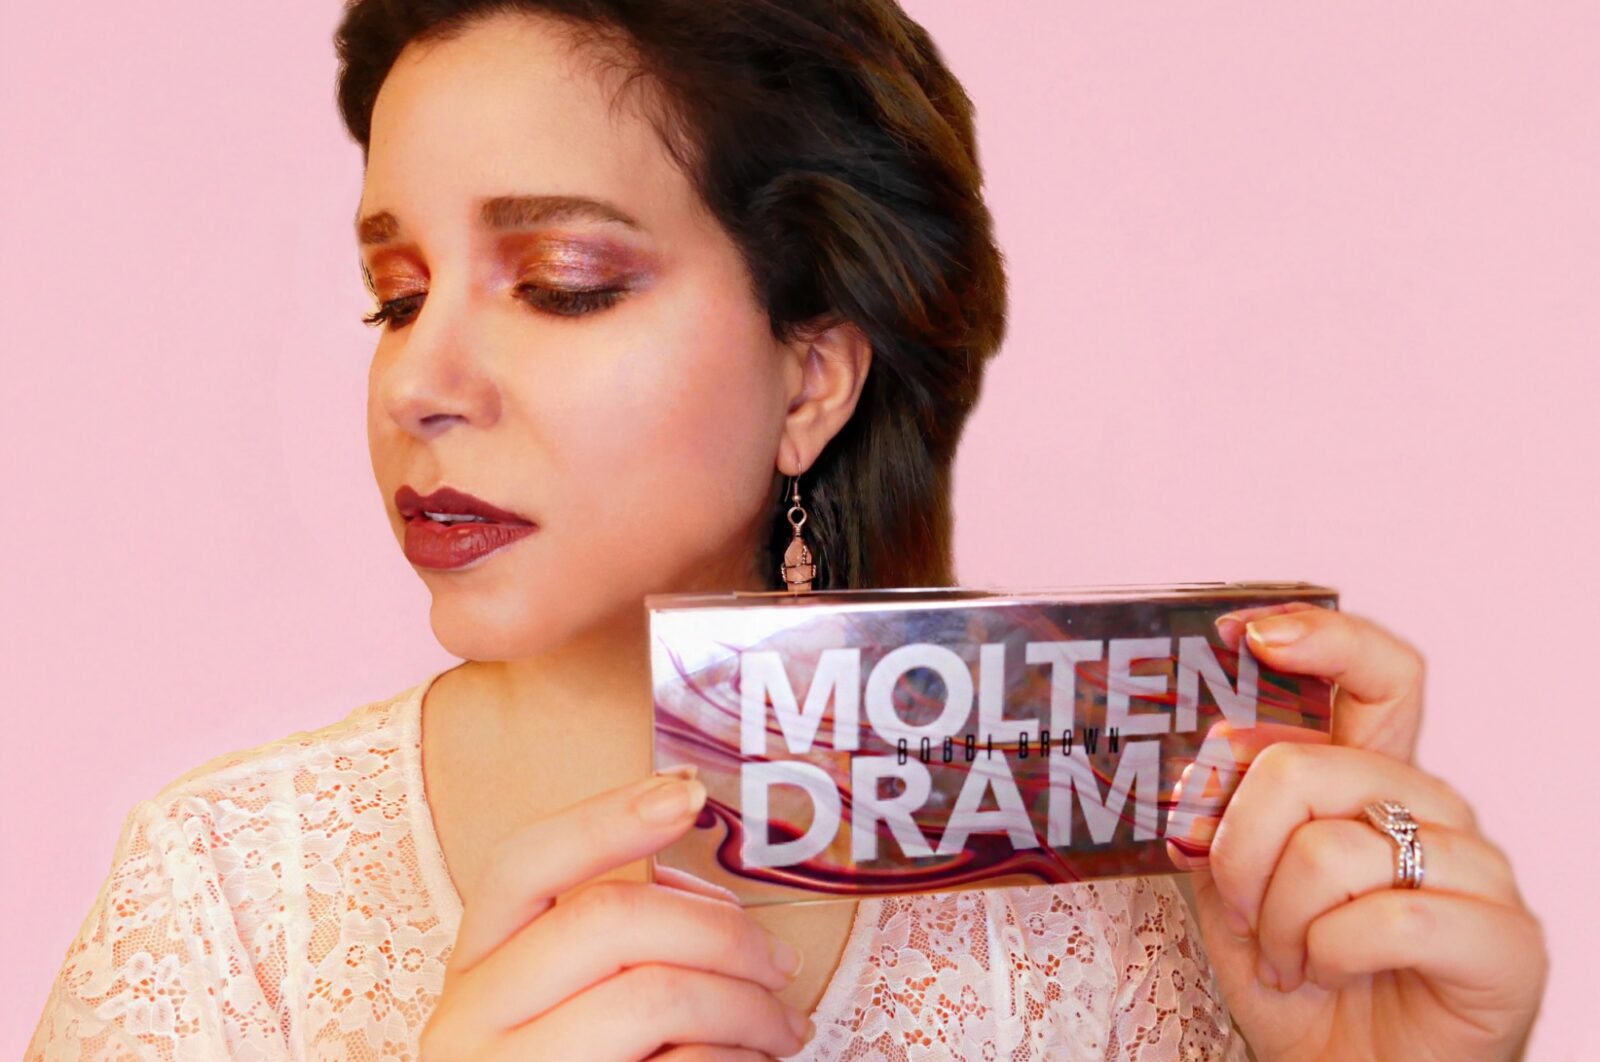 Molten-drama-bobbi-brown-eyeshadow-best-review-matte-shimmer-metallic-palette